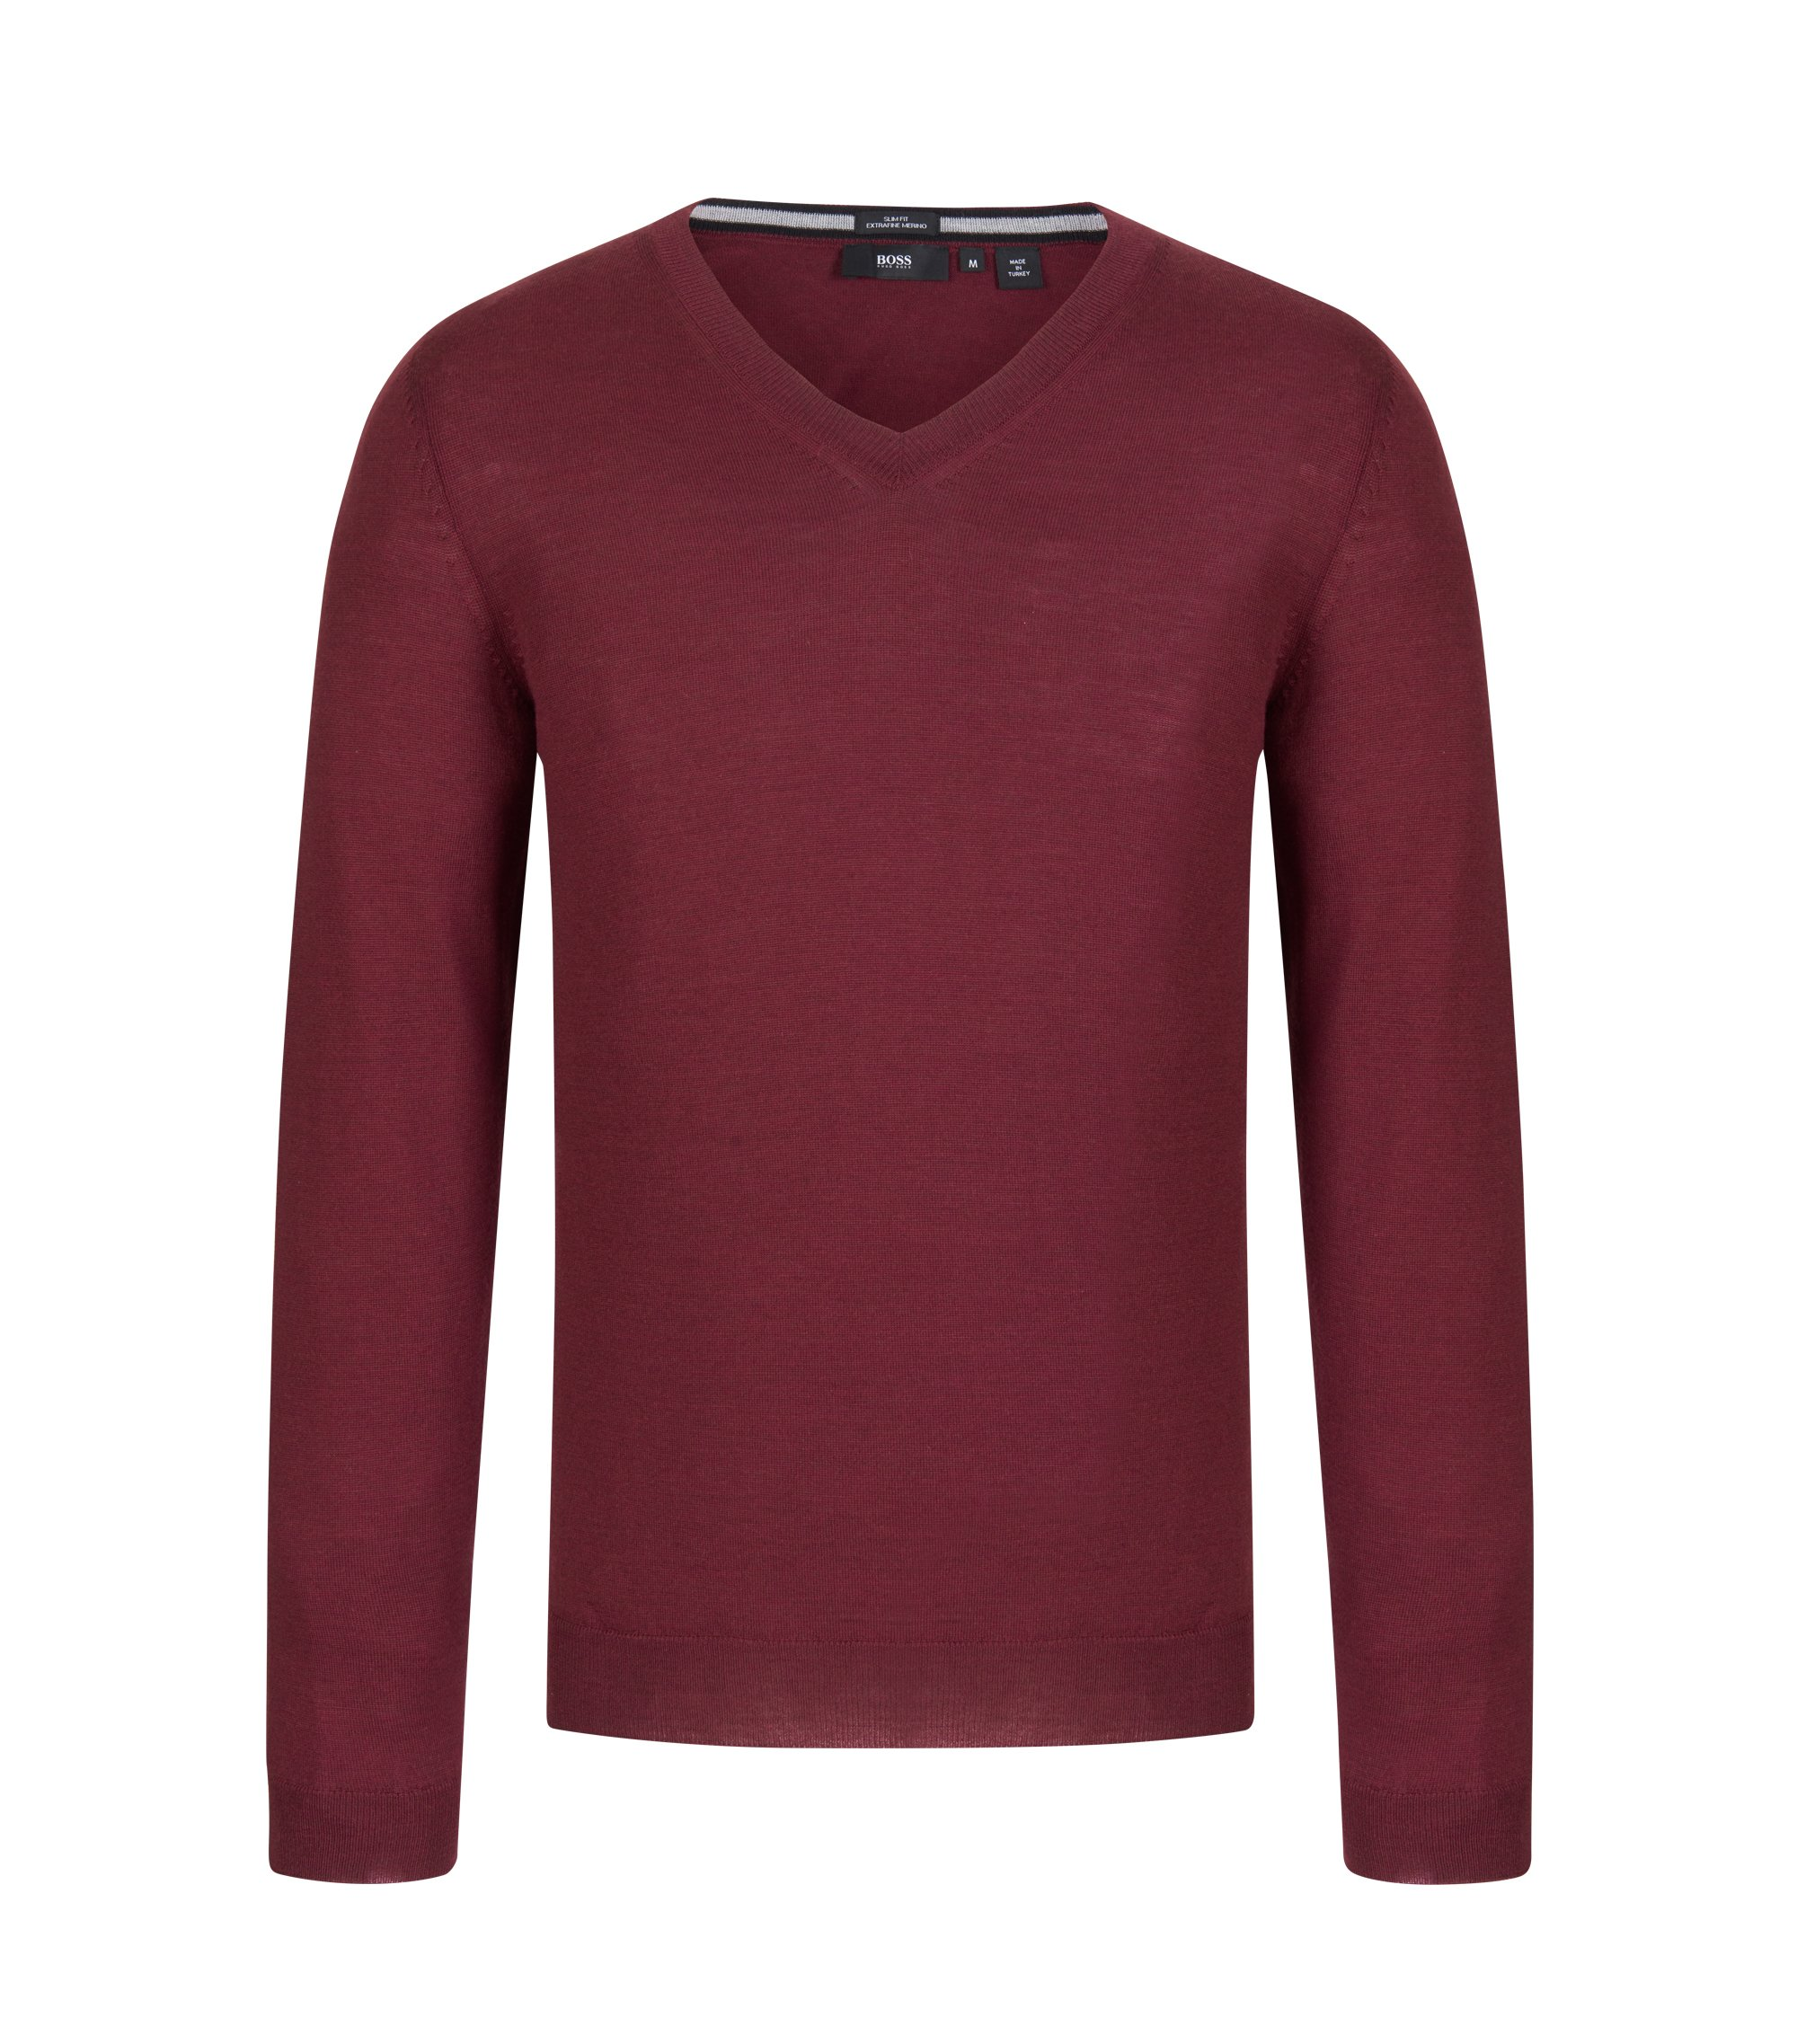 V-Neck Wool Sweater | 'Melba', Dark Red